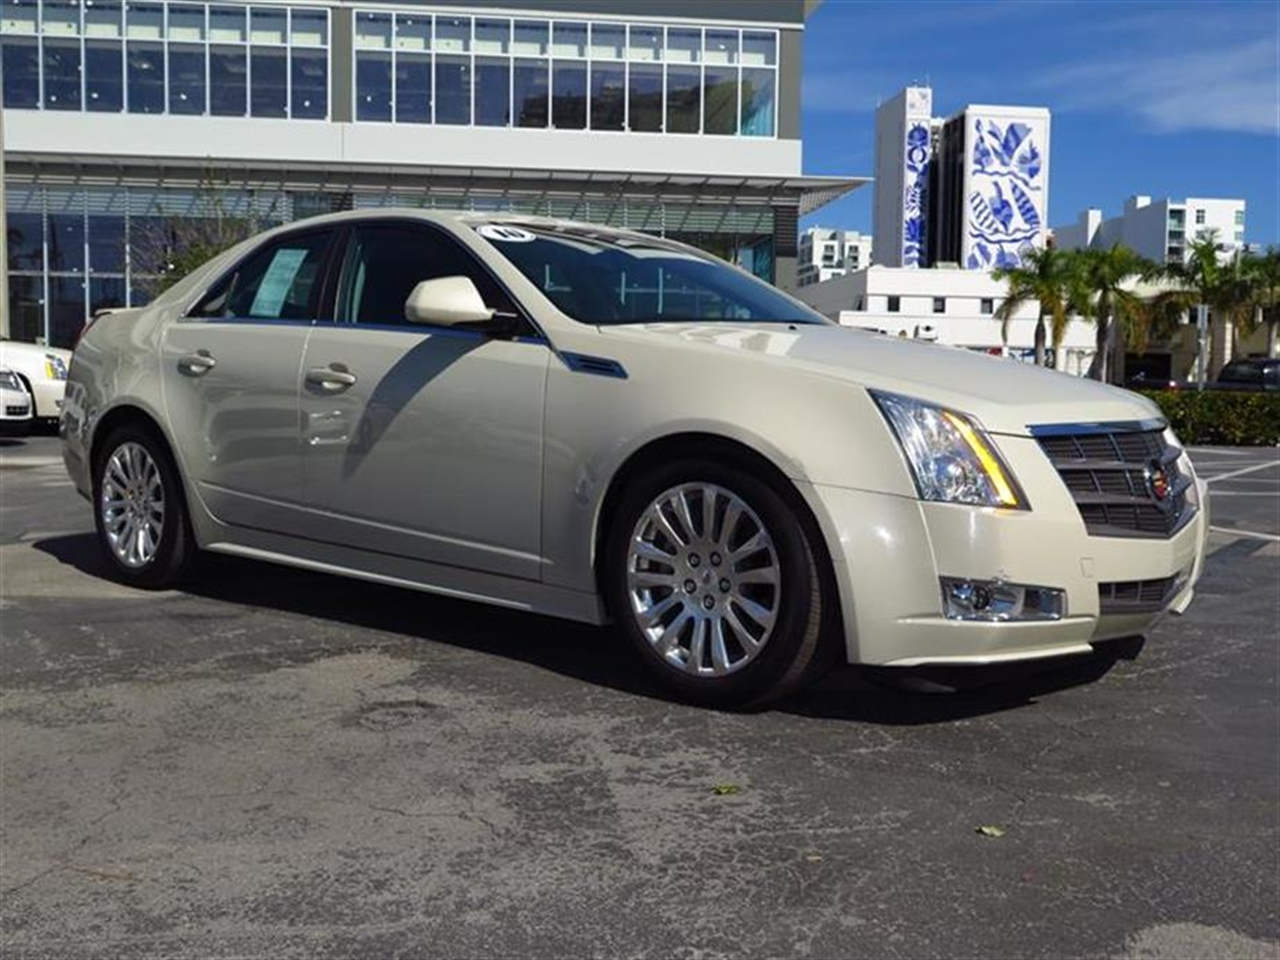 2010 CADILLAC CTS 4dr Sdn 36L Premium RWD 17271 miles Air filtration system automatic cabin odor